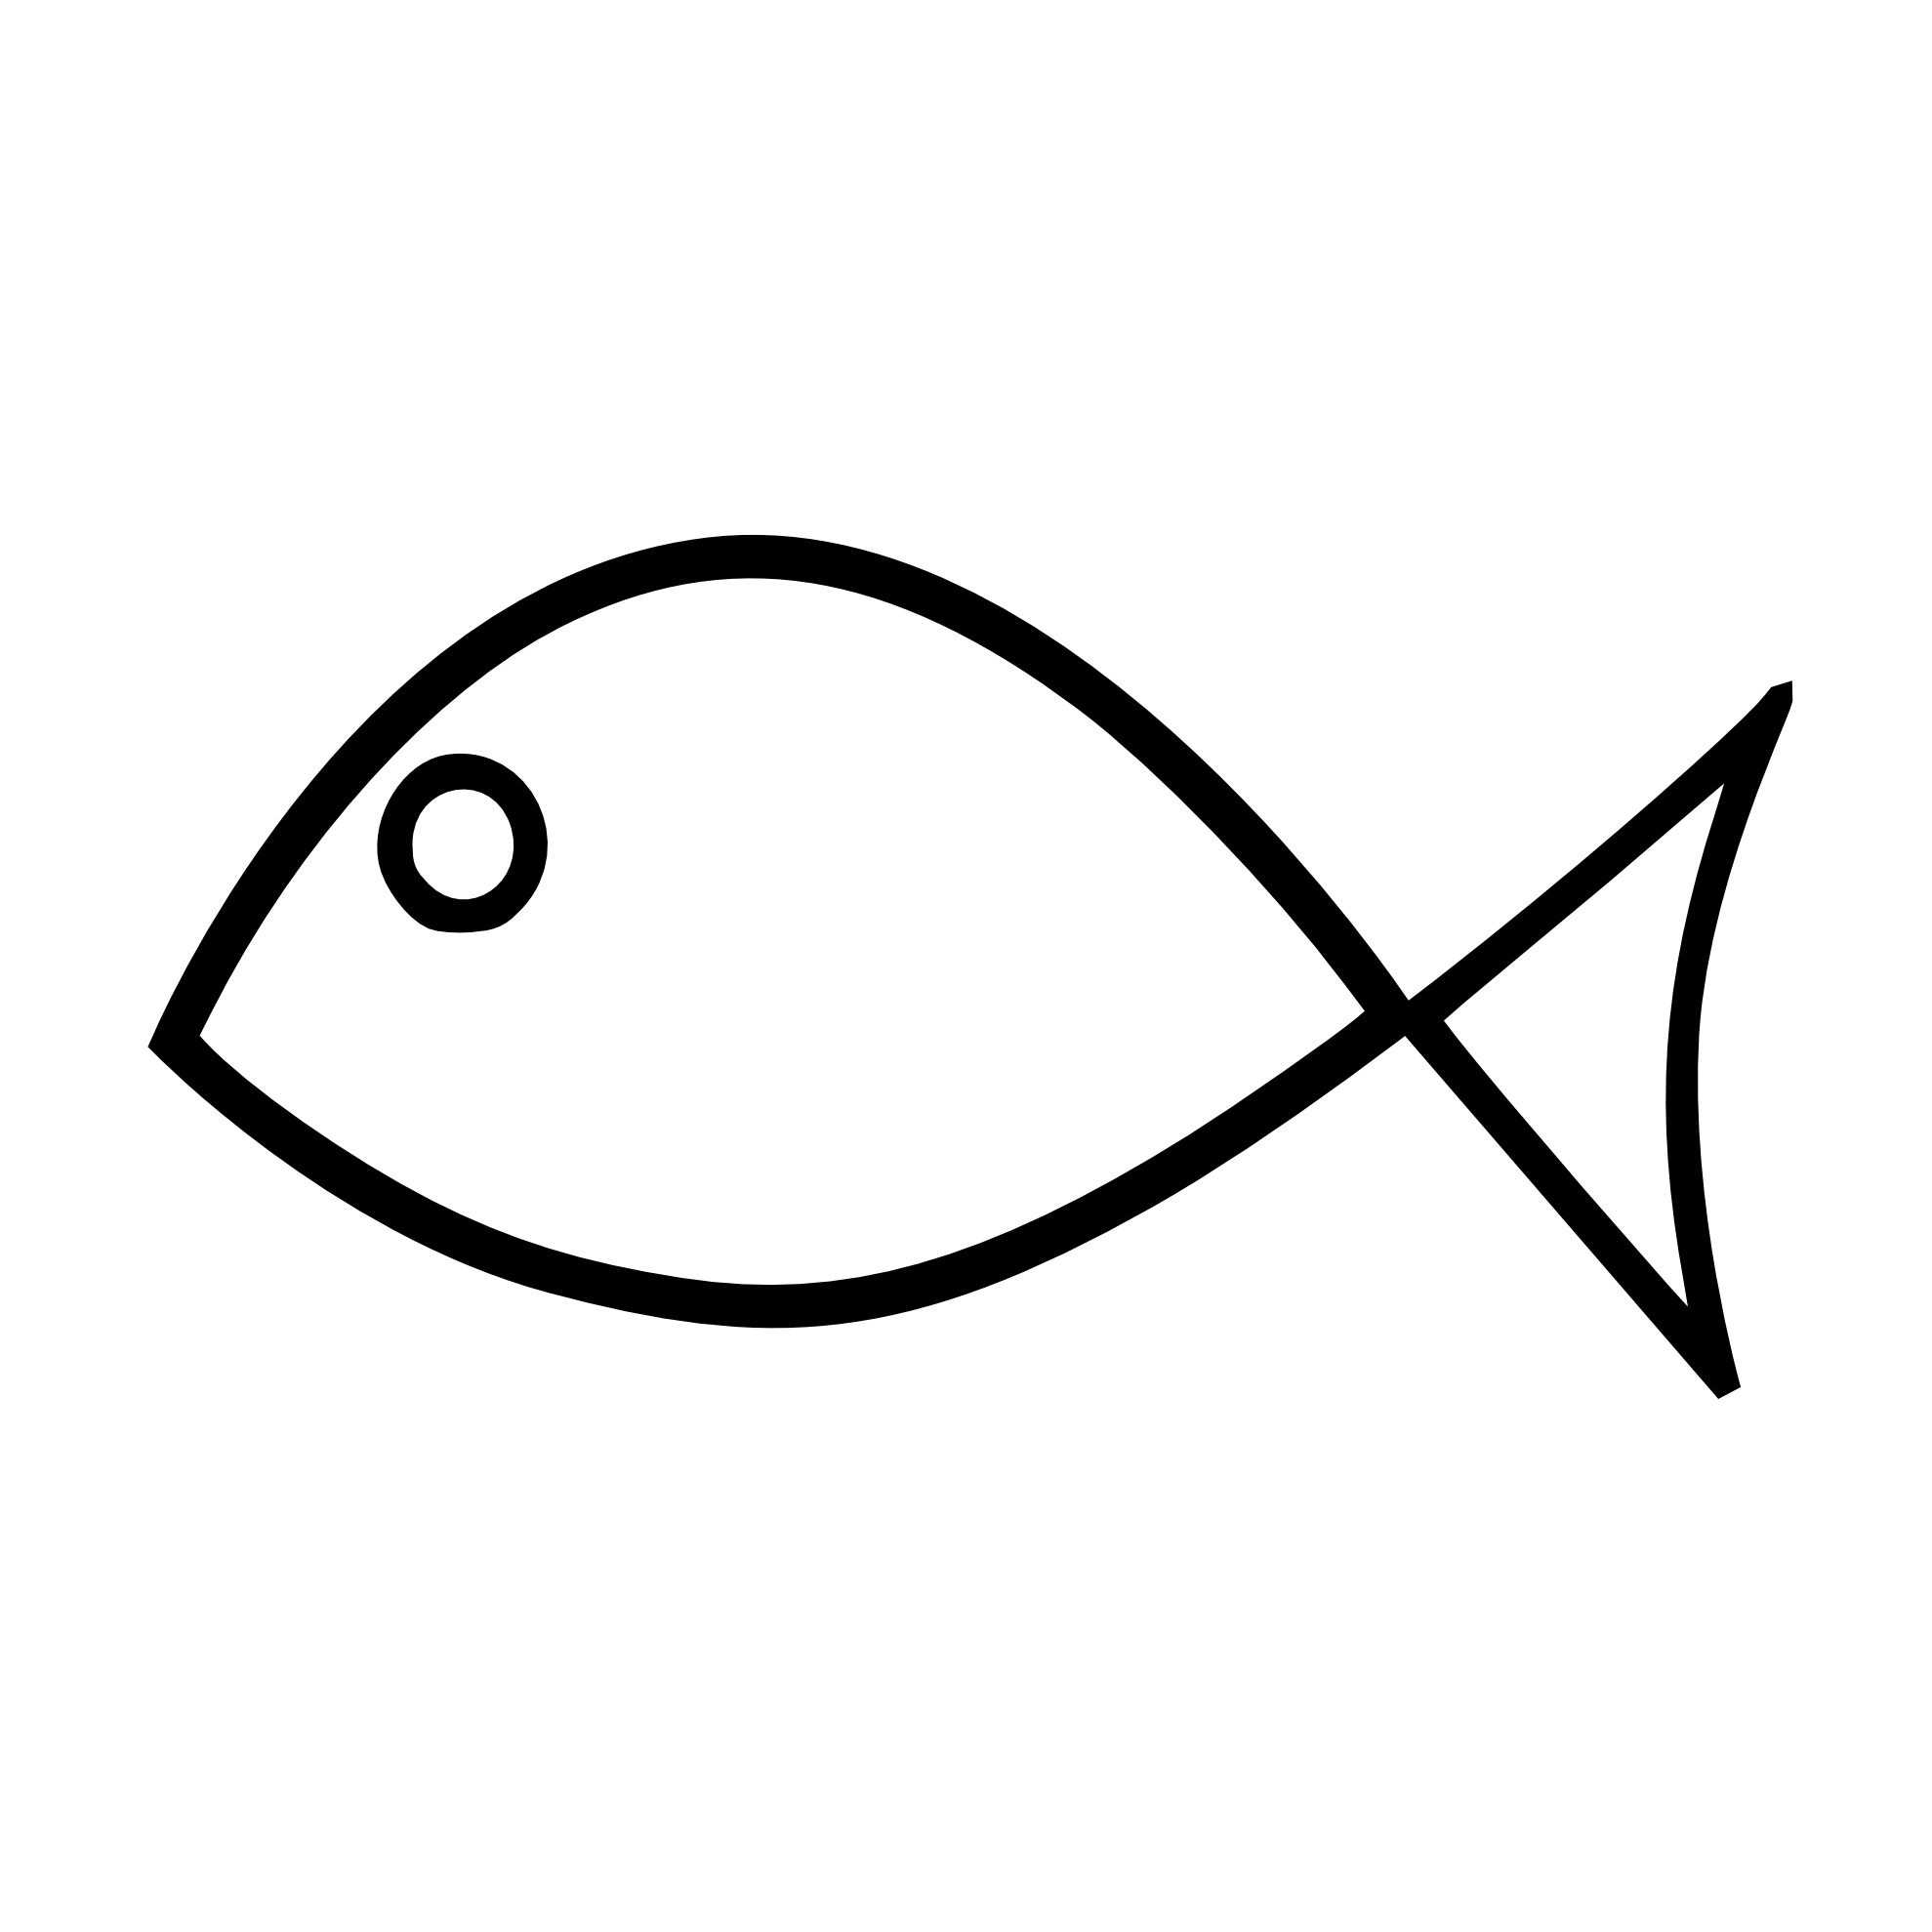 Clipart fish easy.  collection of high